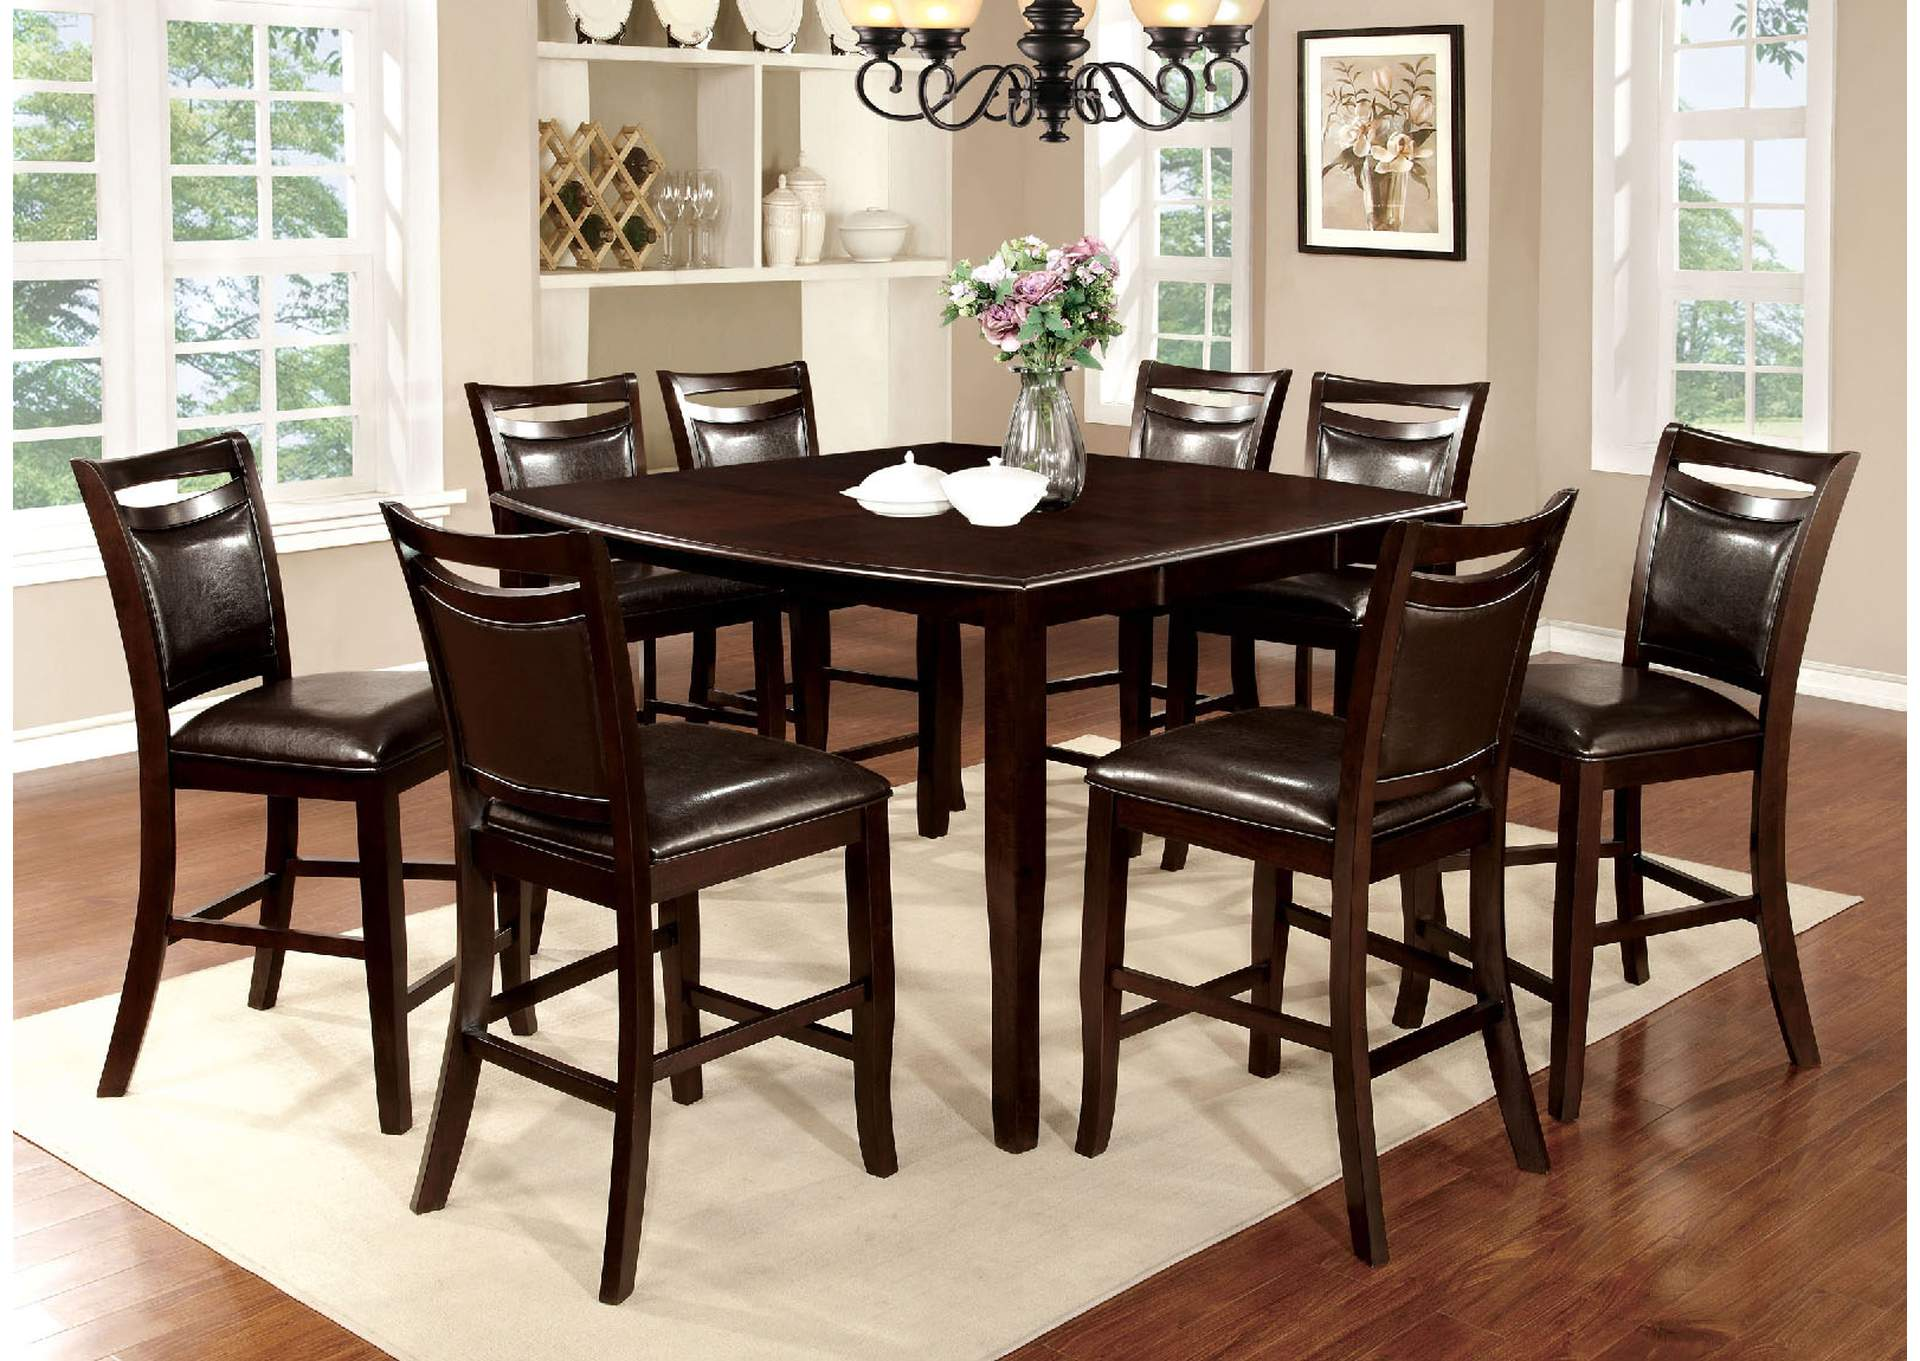 Woodside II Espresso Counter Height Table W/8 Counter Height Chairs, Furniture Of America